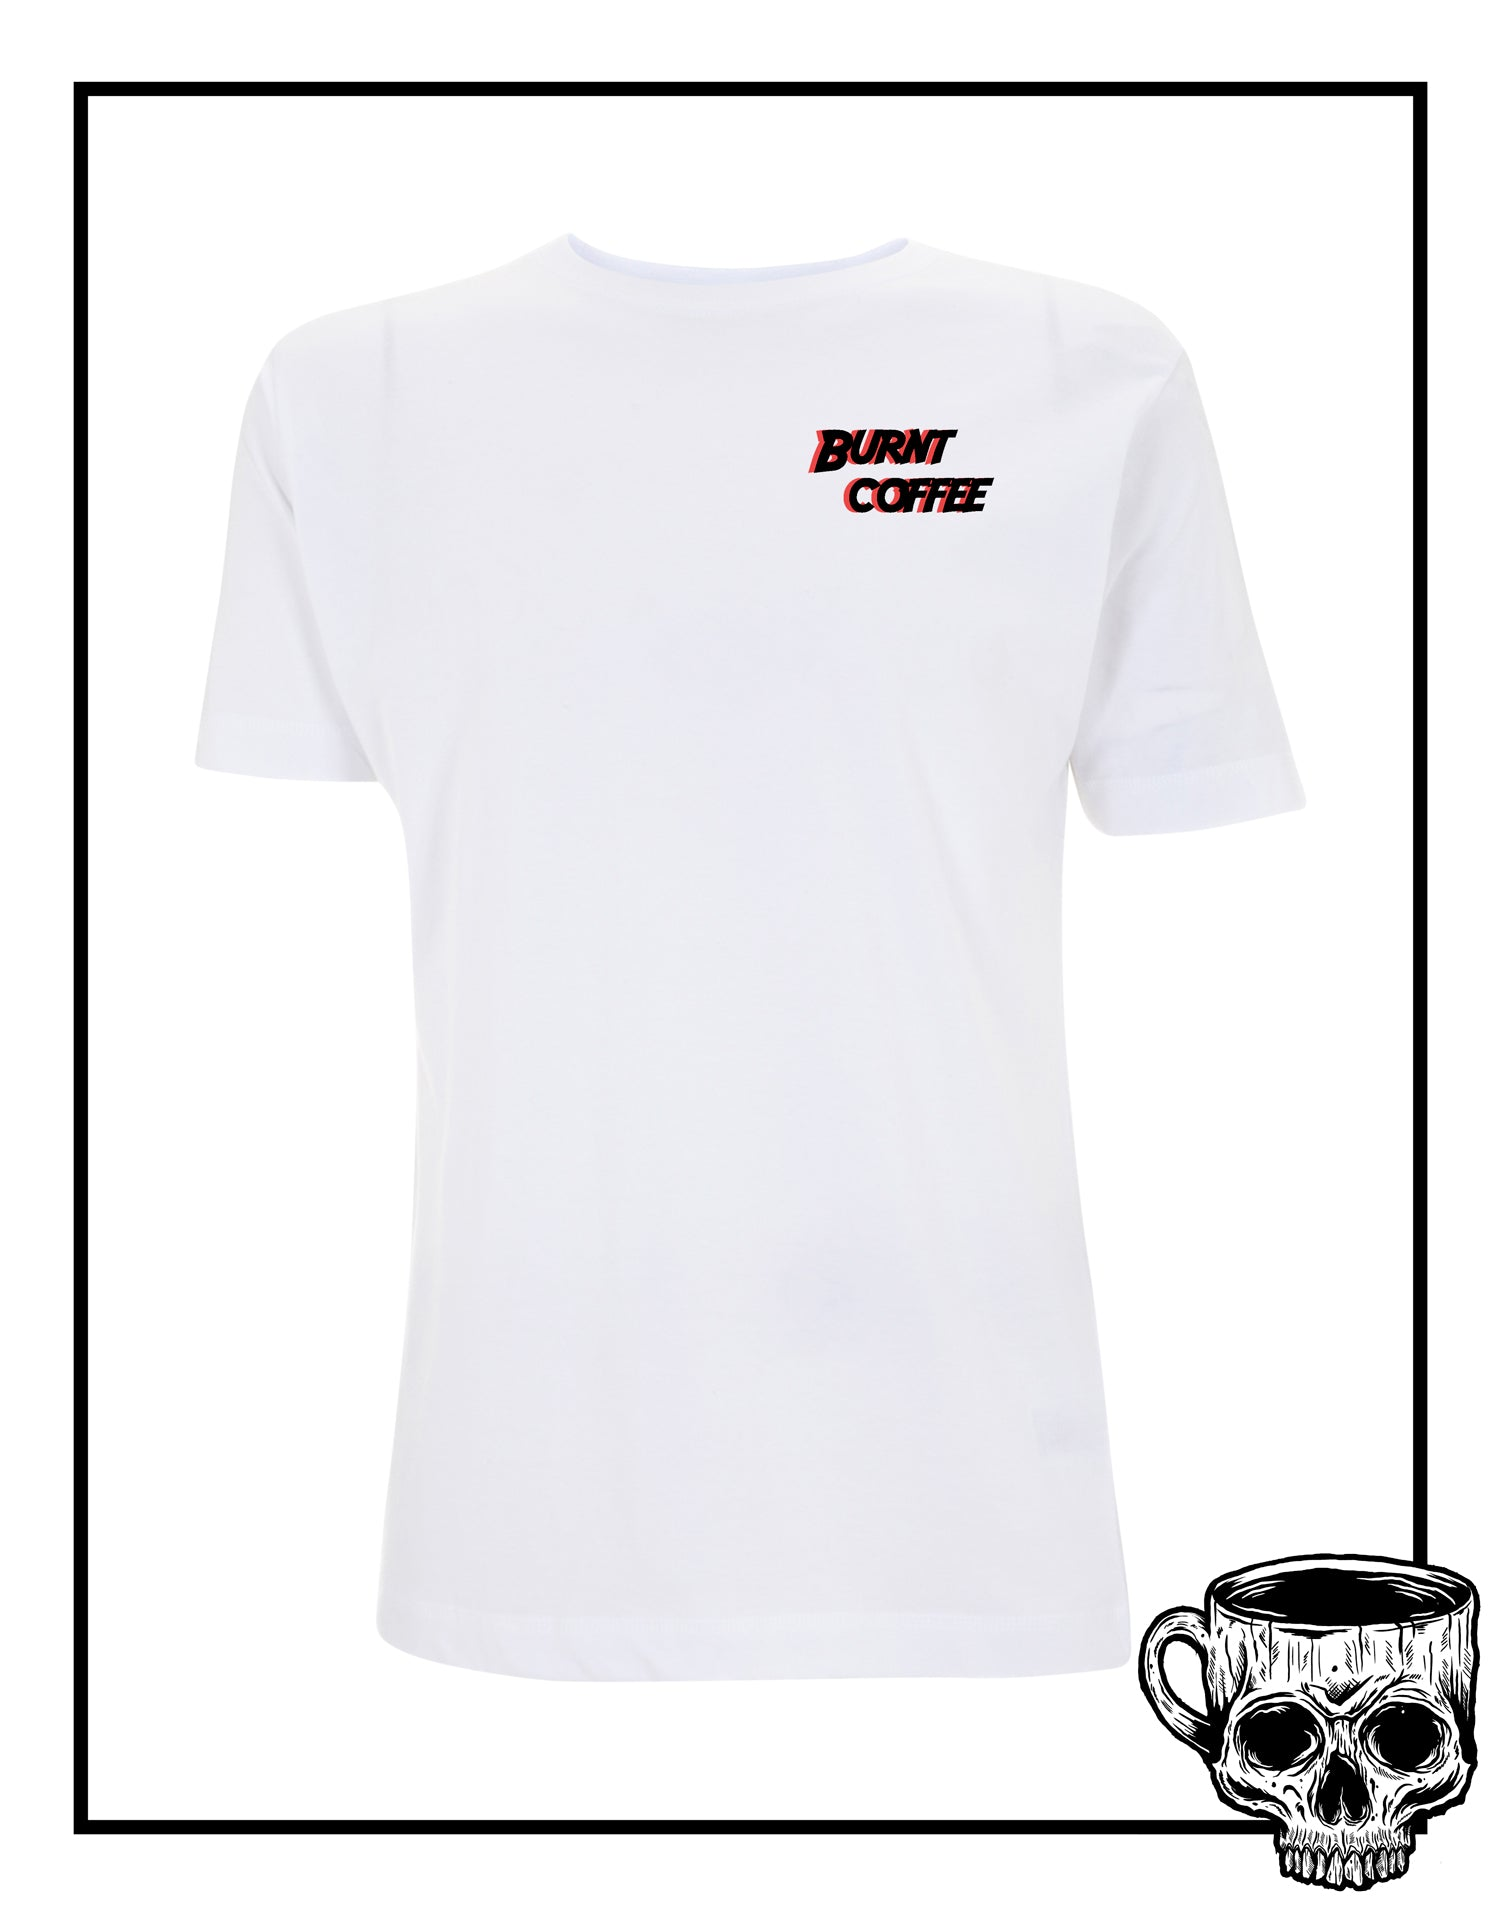 Too Wild To Die T-Shirt - Burnt Coffee Clothing